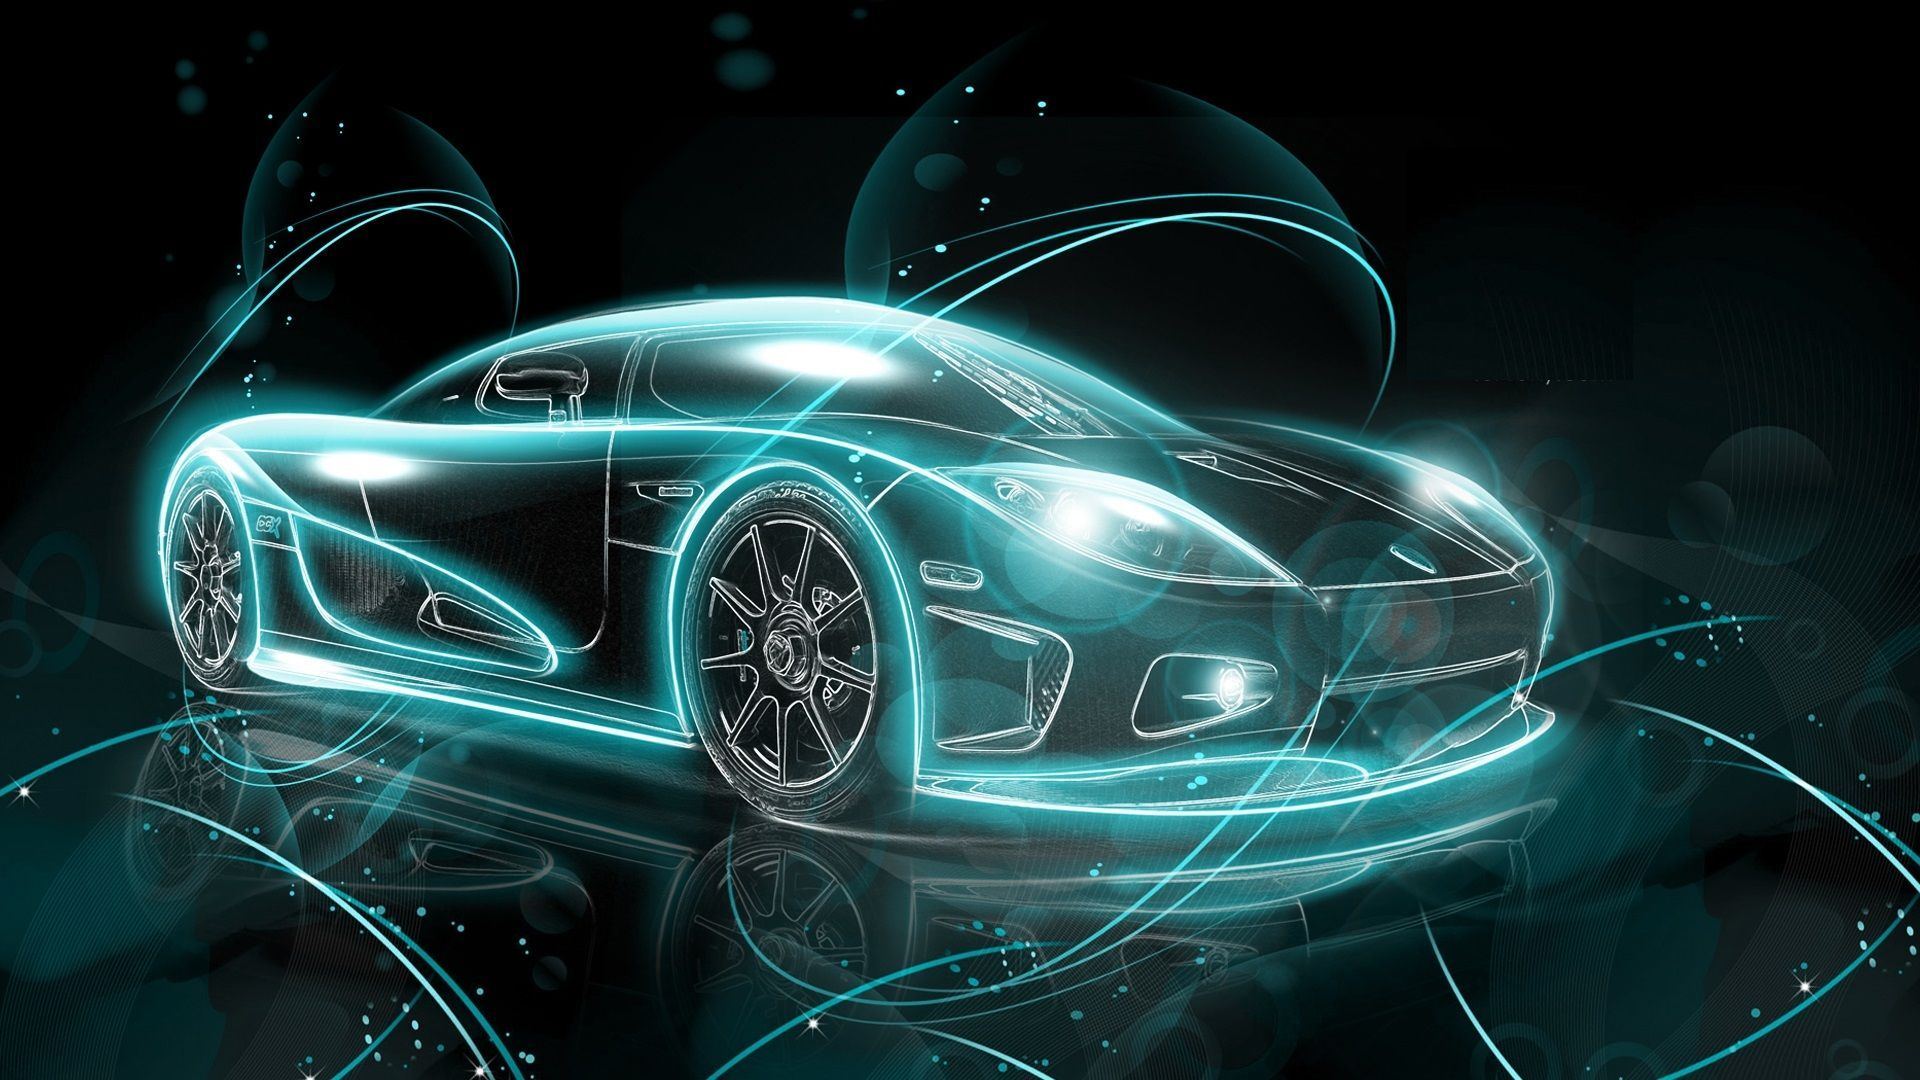 Neon Sports Cars Wallpapers Top Free Neon Sports Cars Backgrounds